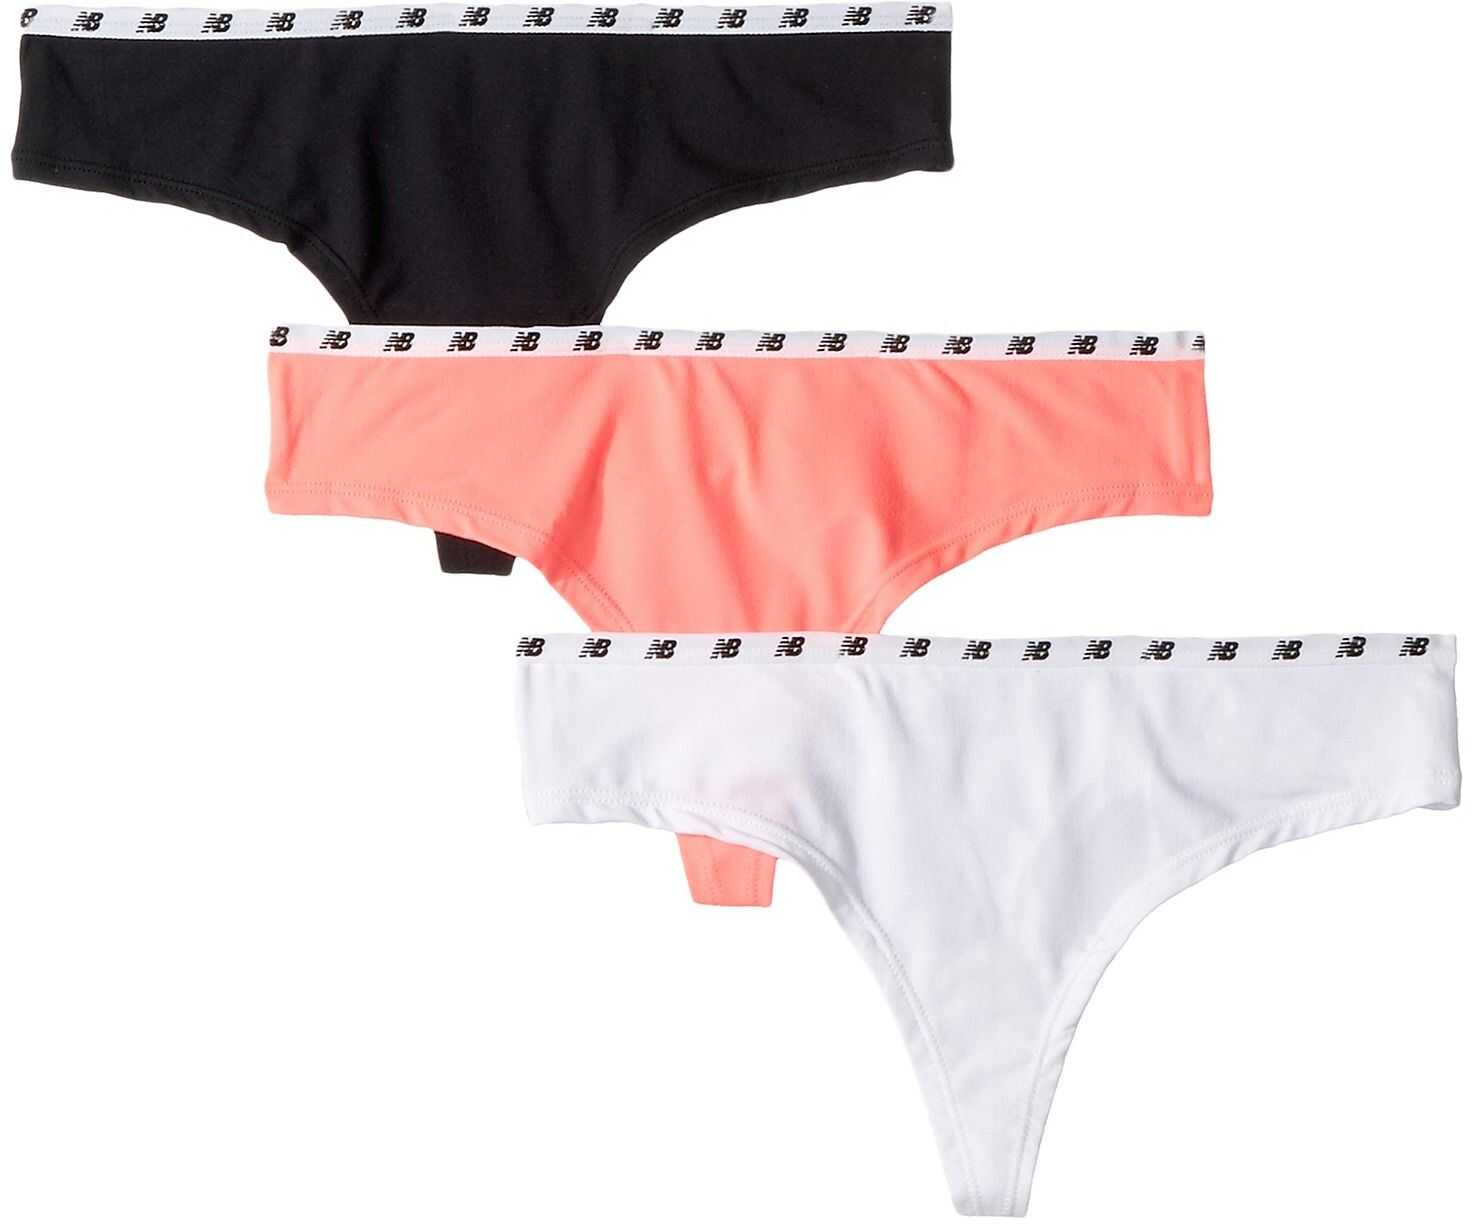 New Balance NB Everyday Collection Thong 3-Pack White/Guava/Black